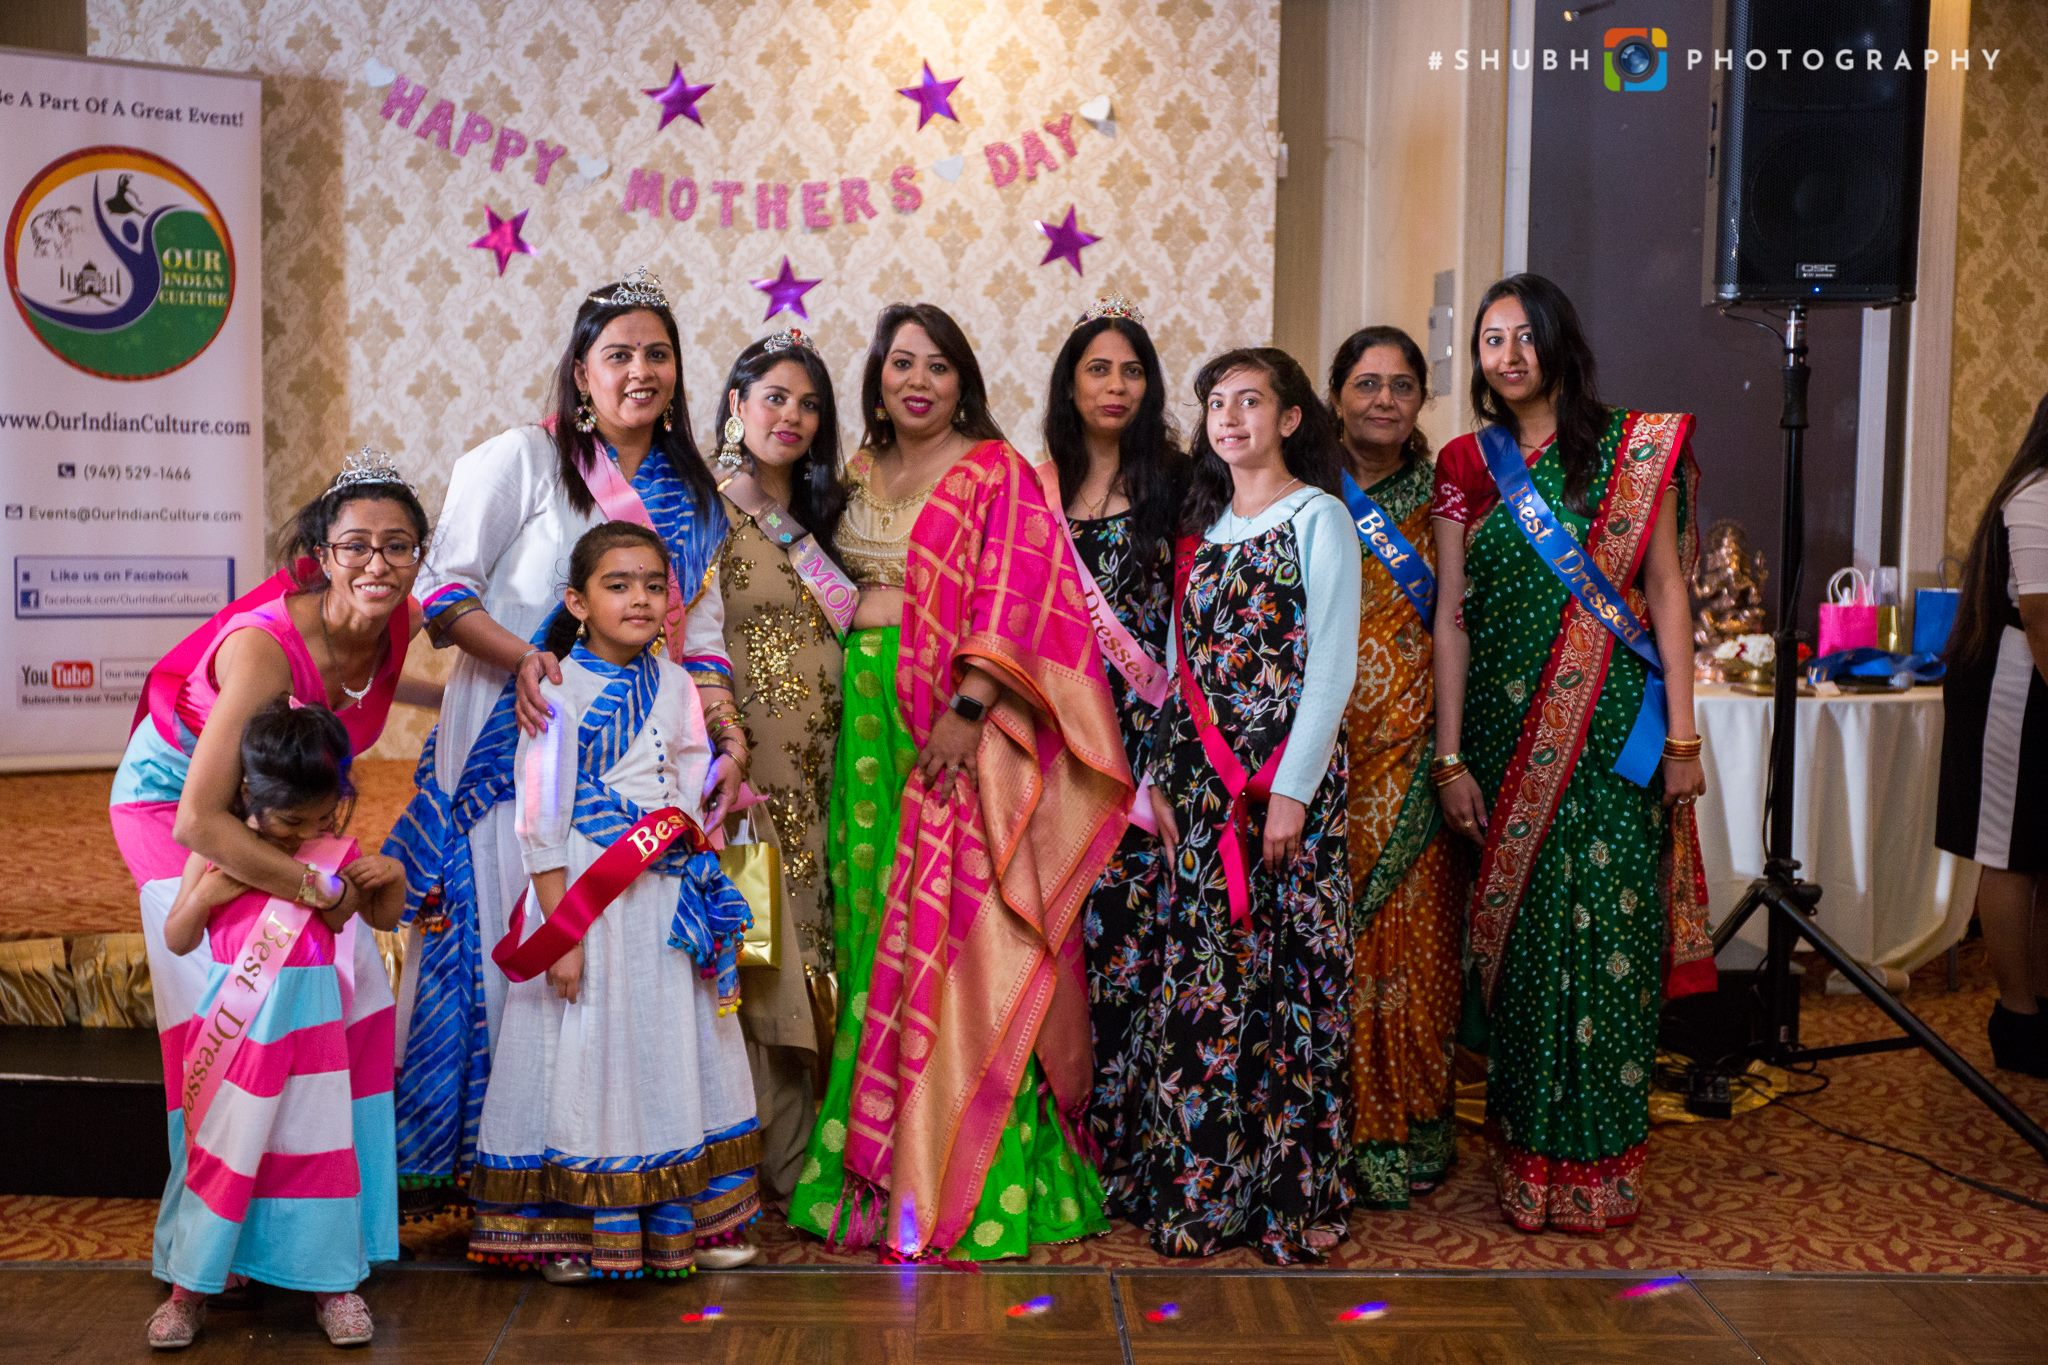 Mother's Day Celebration Event Organized By OurIndianCulture.com at The Yellow Chilli by Master Chef Sanjeev Kapoor, Buena Park, CA, May 2018